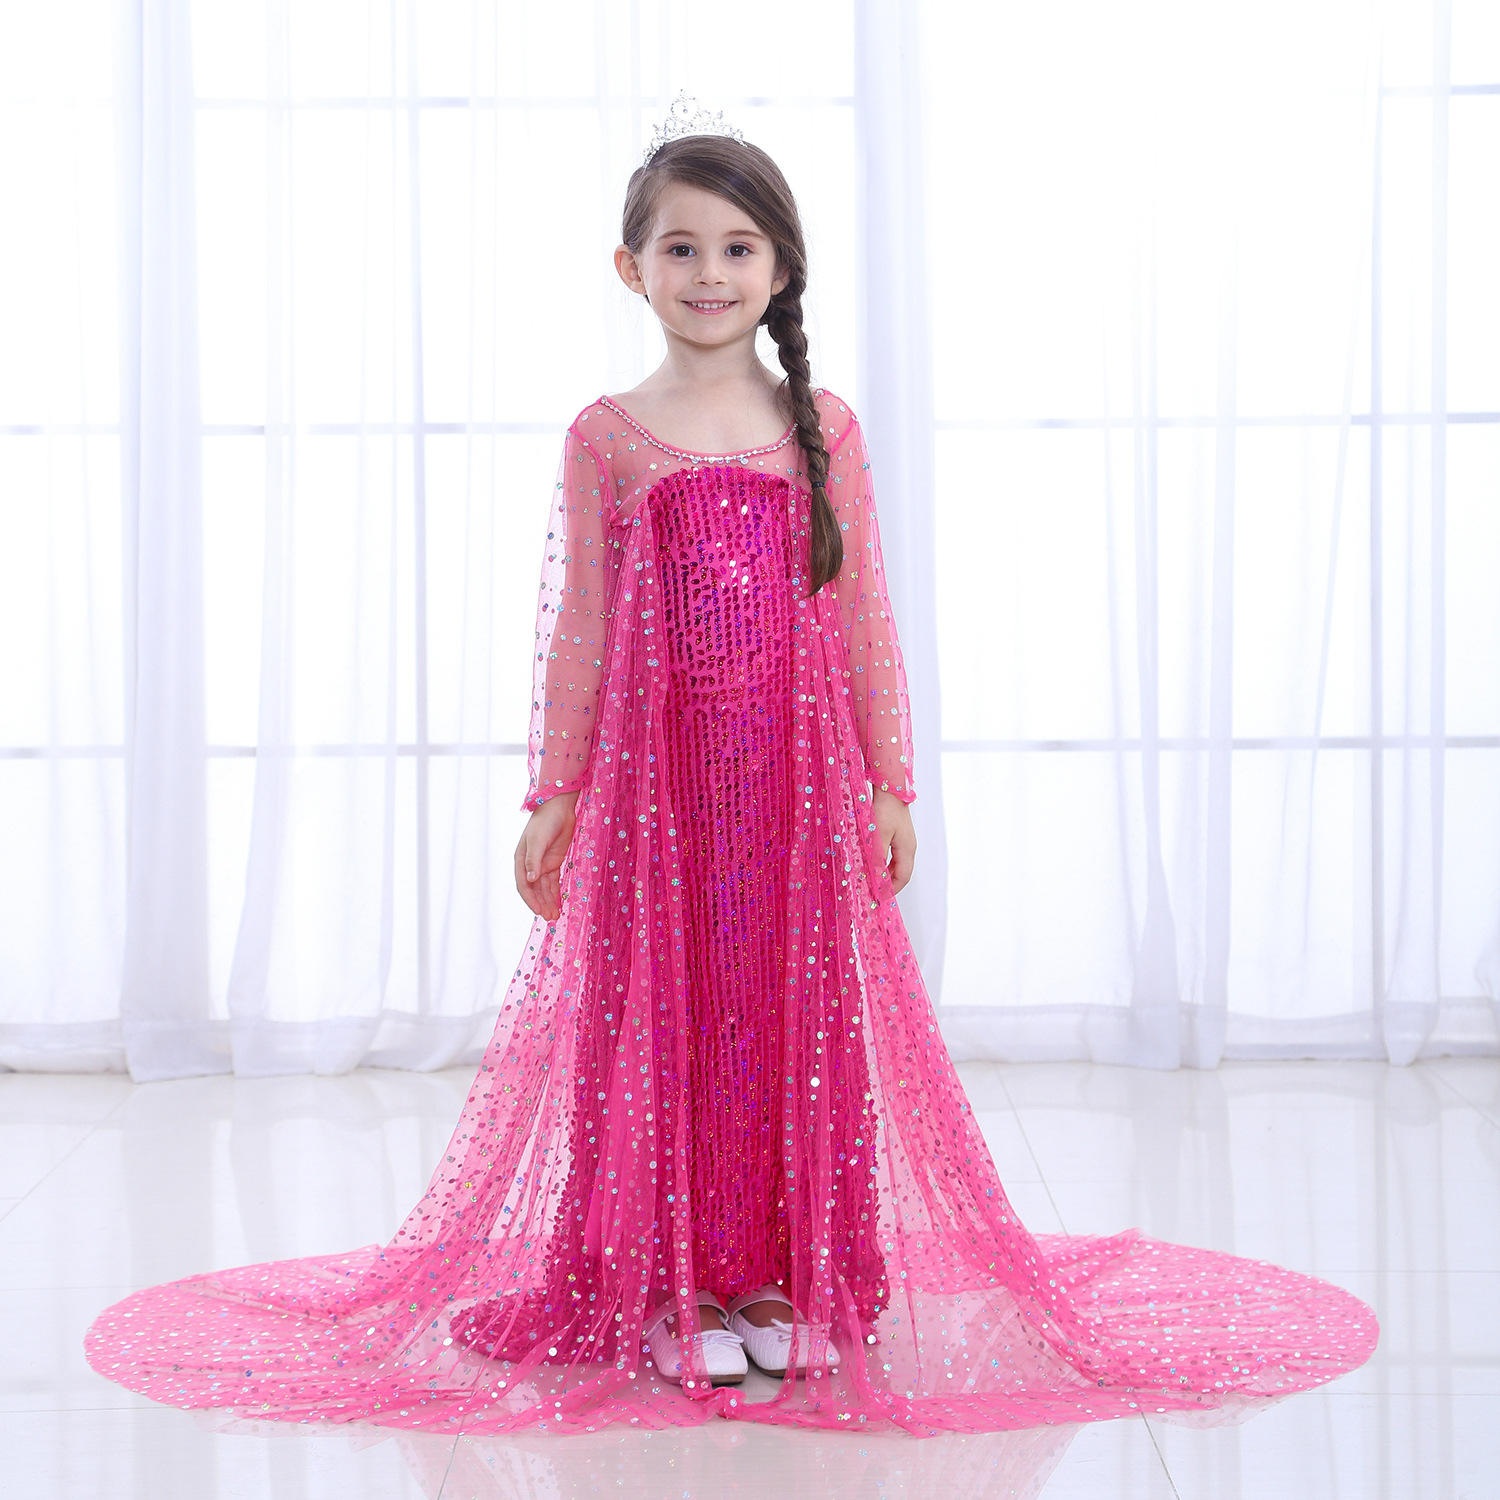 Girls Princess Costume Birthday Party Halloween Cosplay Dressアップエルザ<span class=keywords><strong>冷凍ドレス</strong></span>